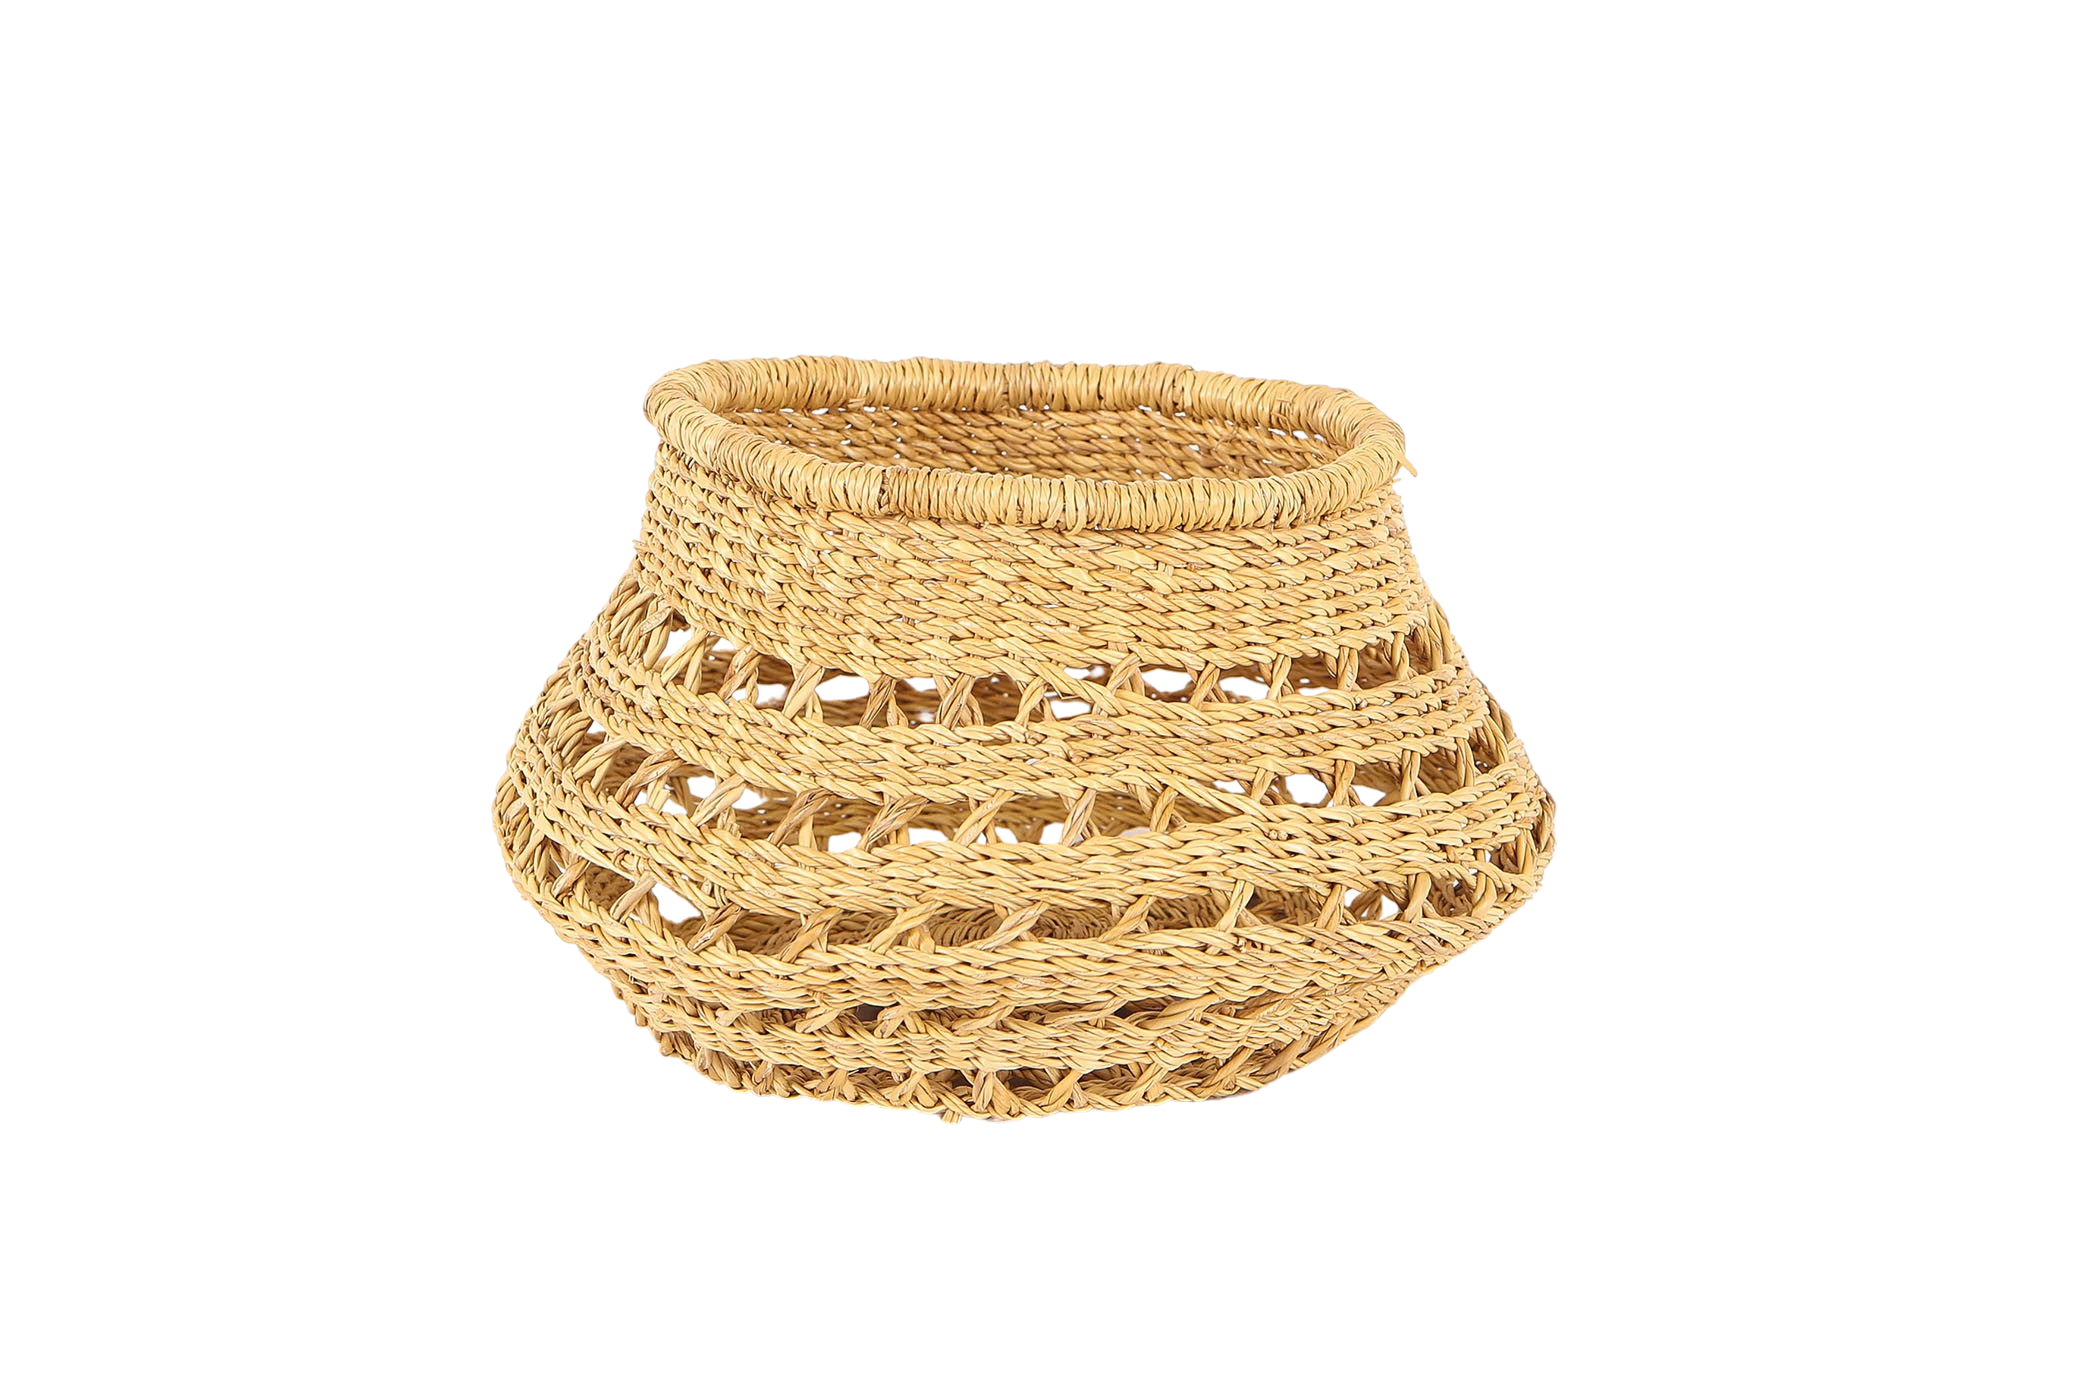 Round Tapered All Natural Lace Fruit Basket - KAZI - Artisan made high quality home decor and wall art